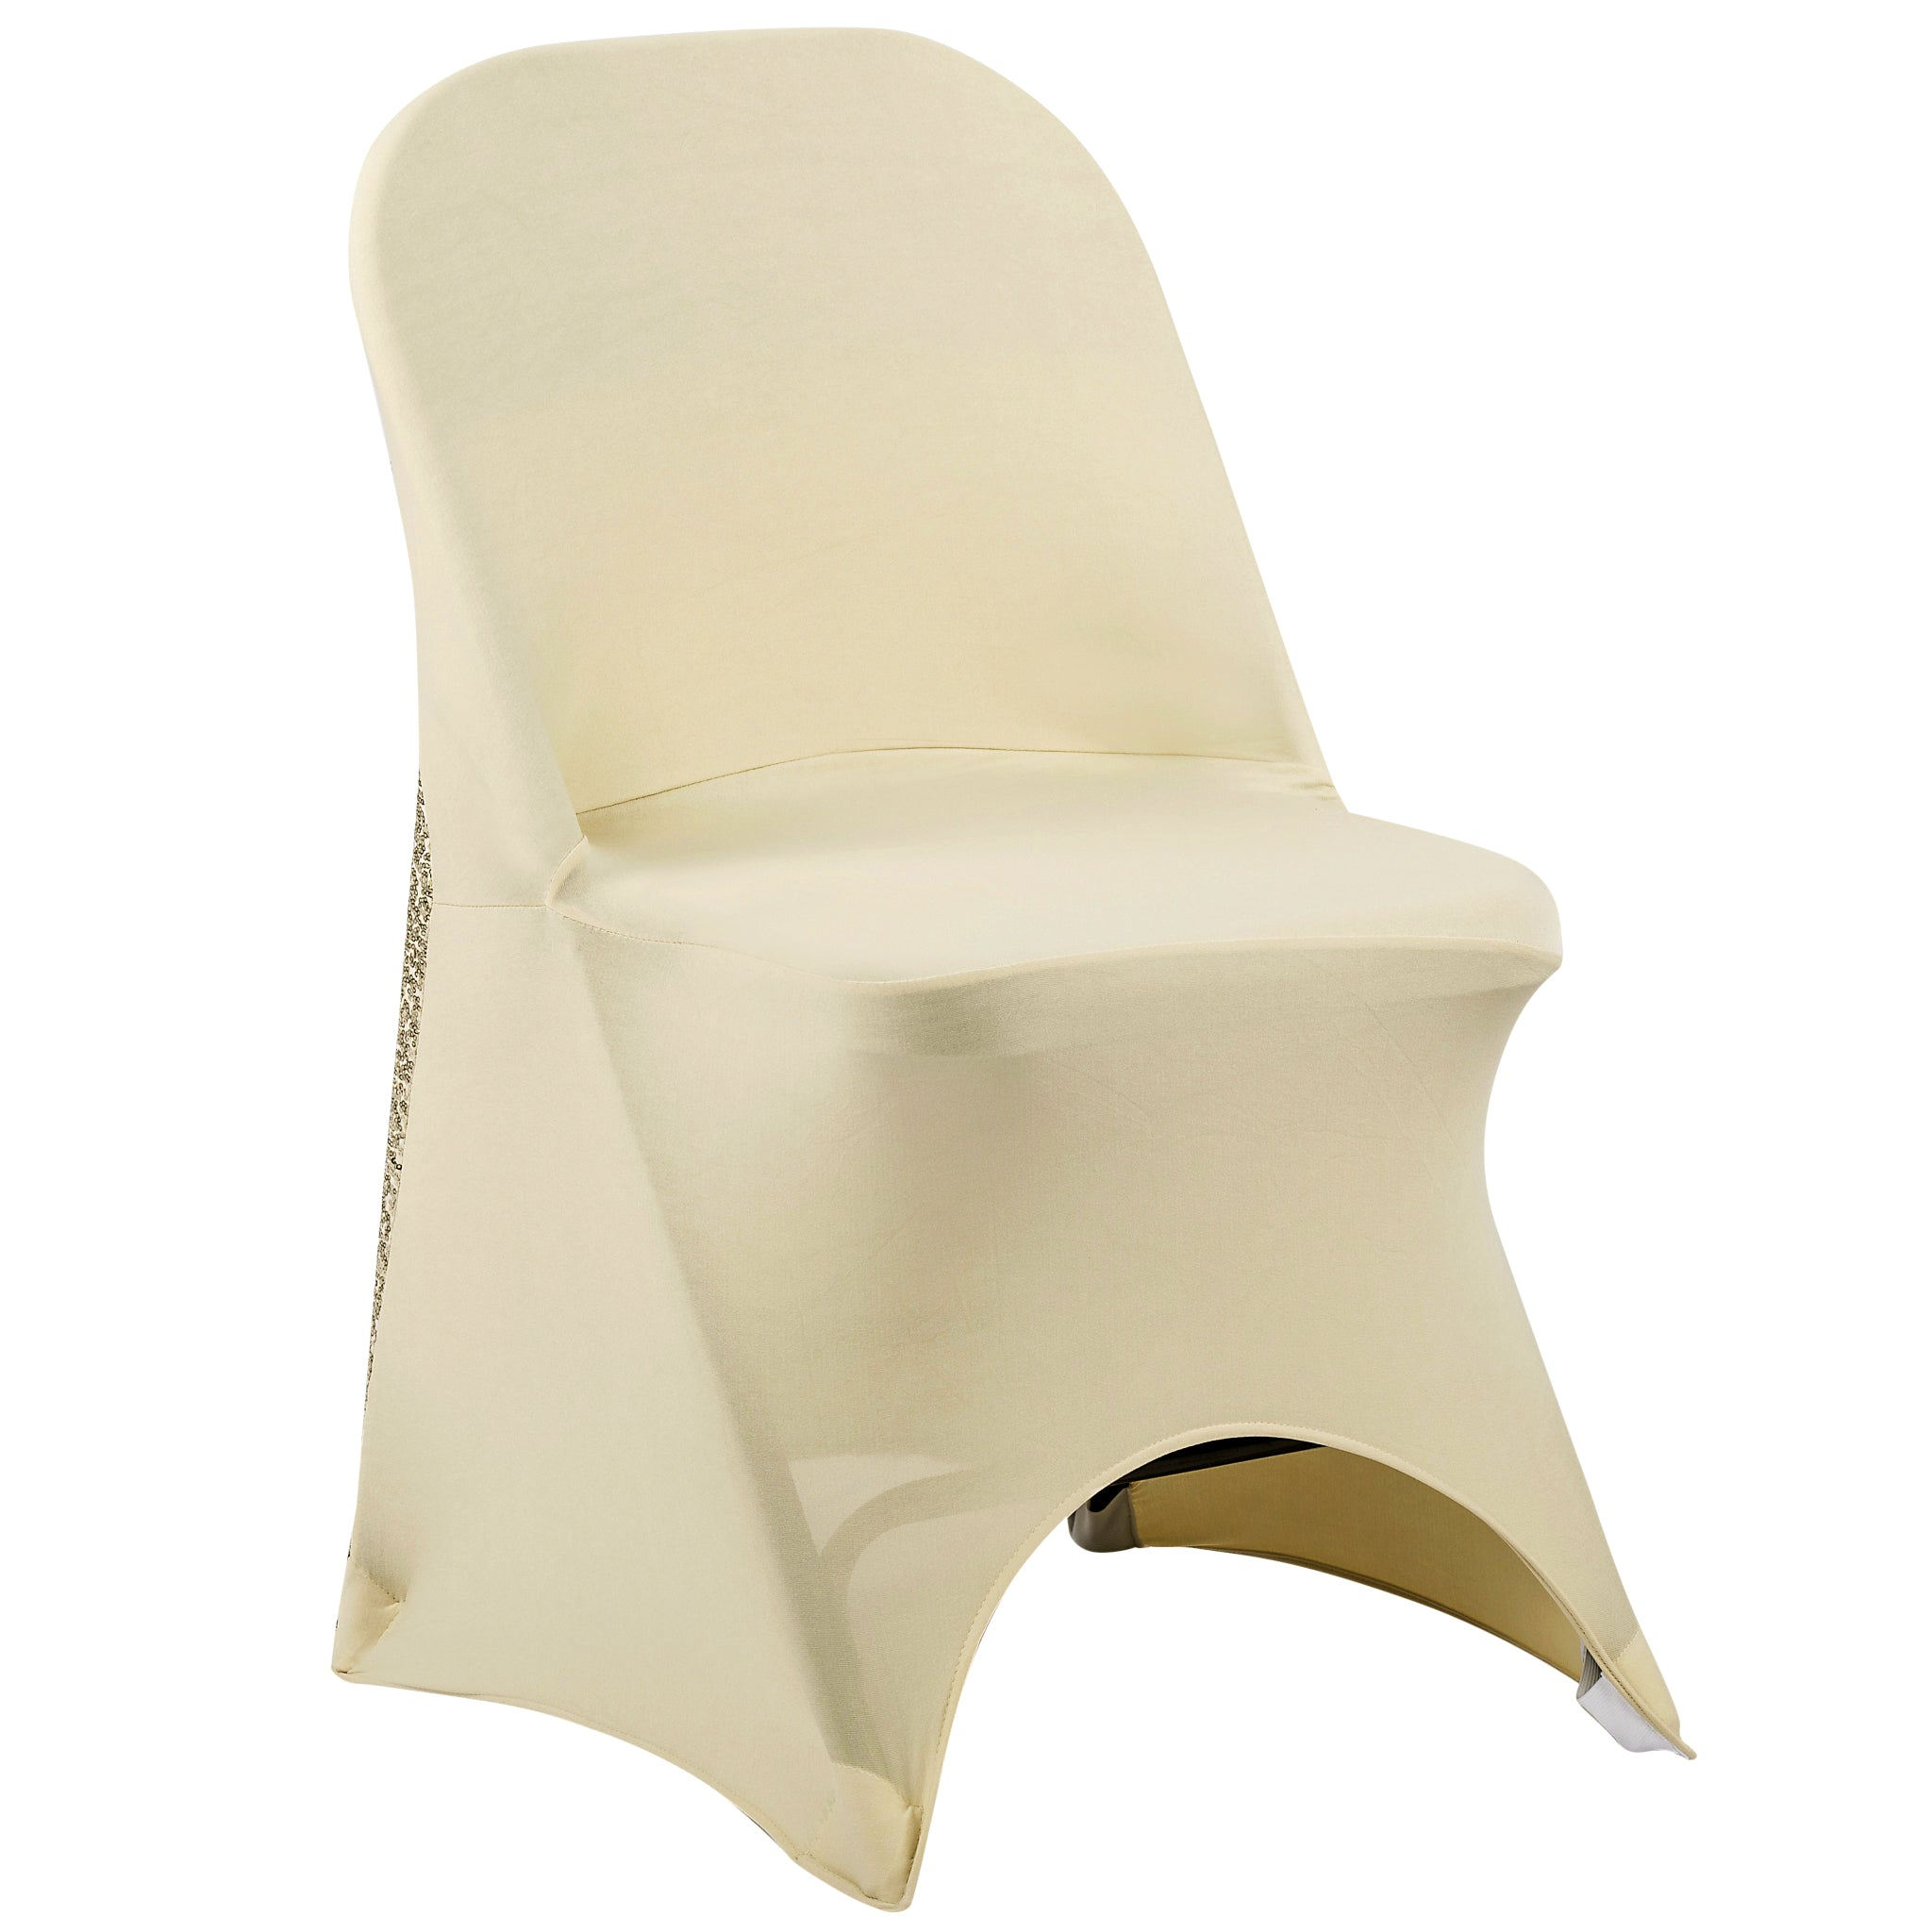 Prime Wholesale Spandex Chair Covers Cv Linens Caraccident5 Cool Chair Designs And Ideas Caraccident5Info